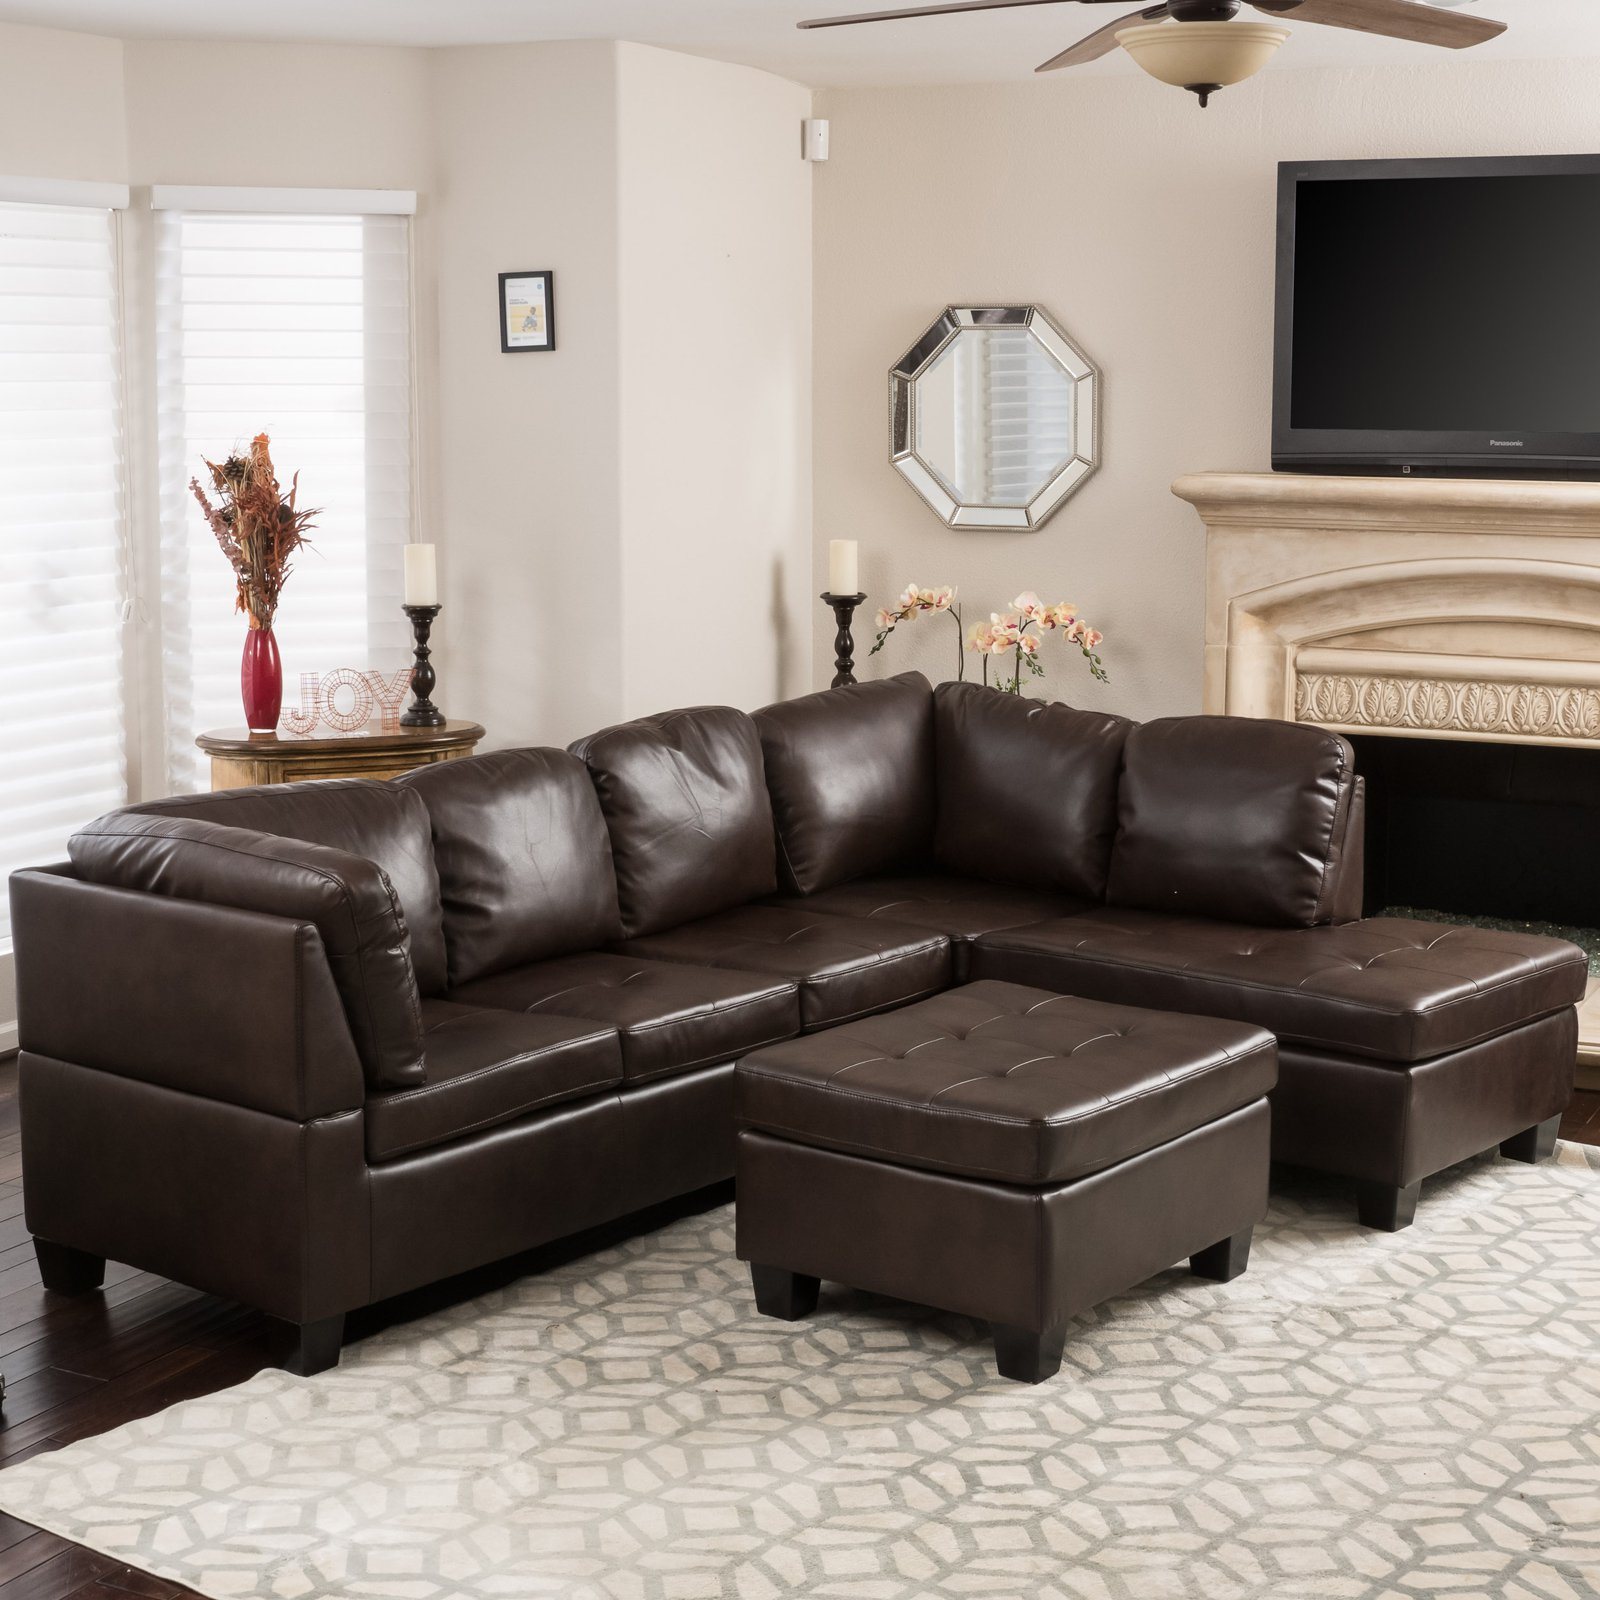 Evan 3 Piece Leather Sectional Sofa - Walmart.com